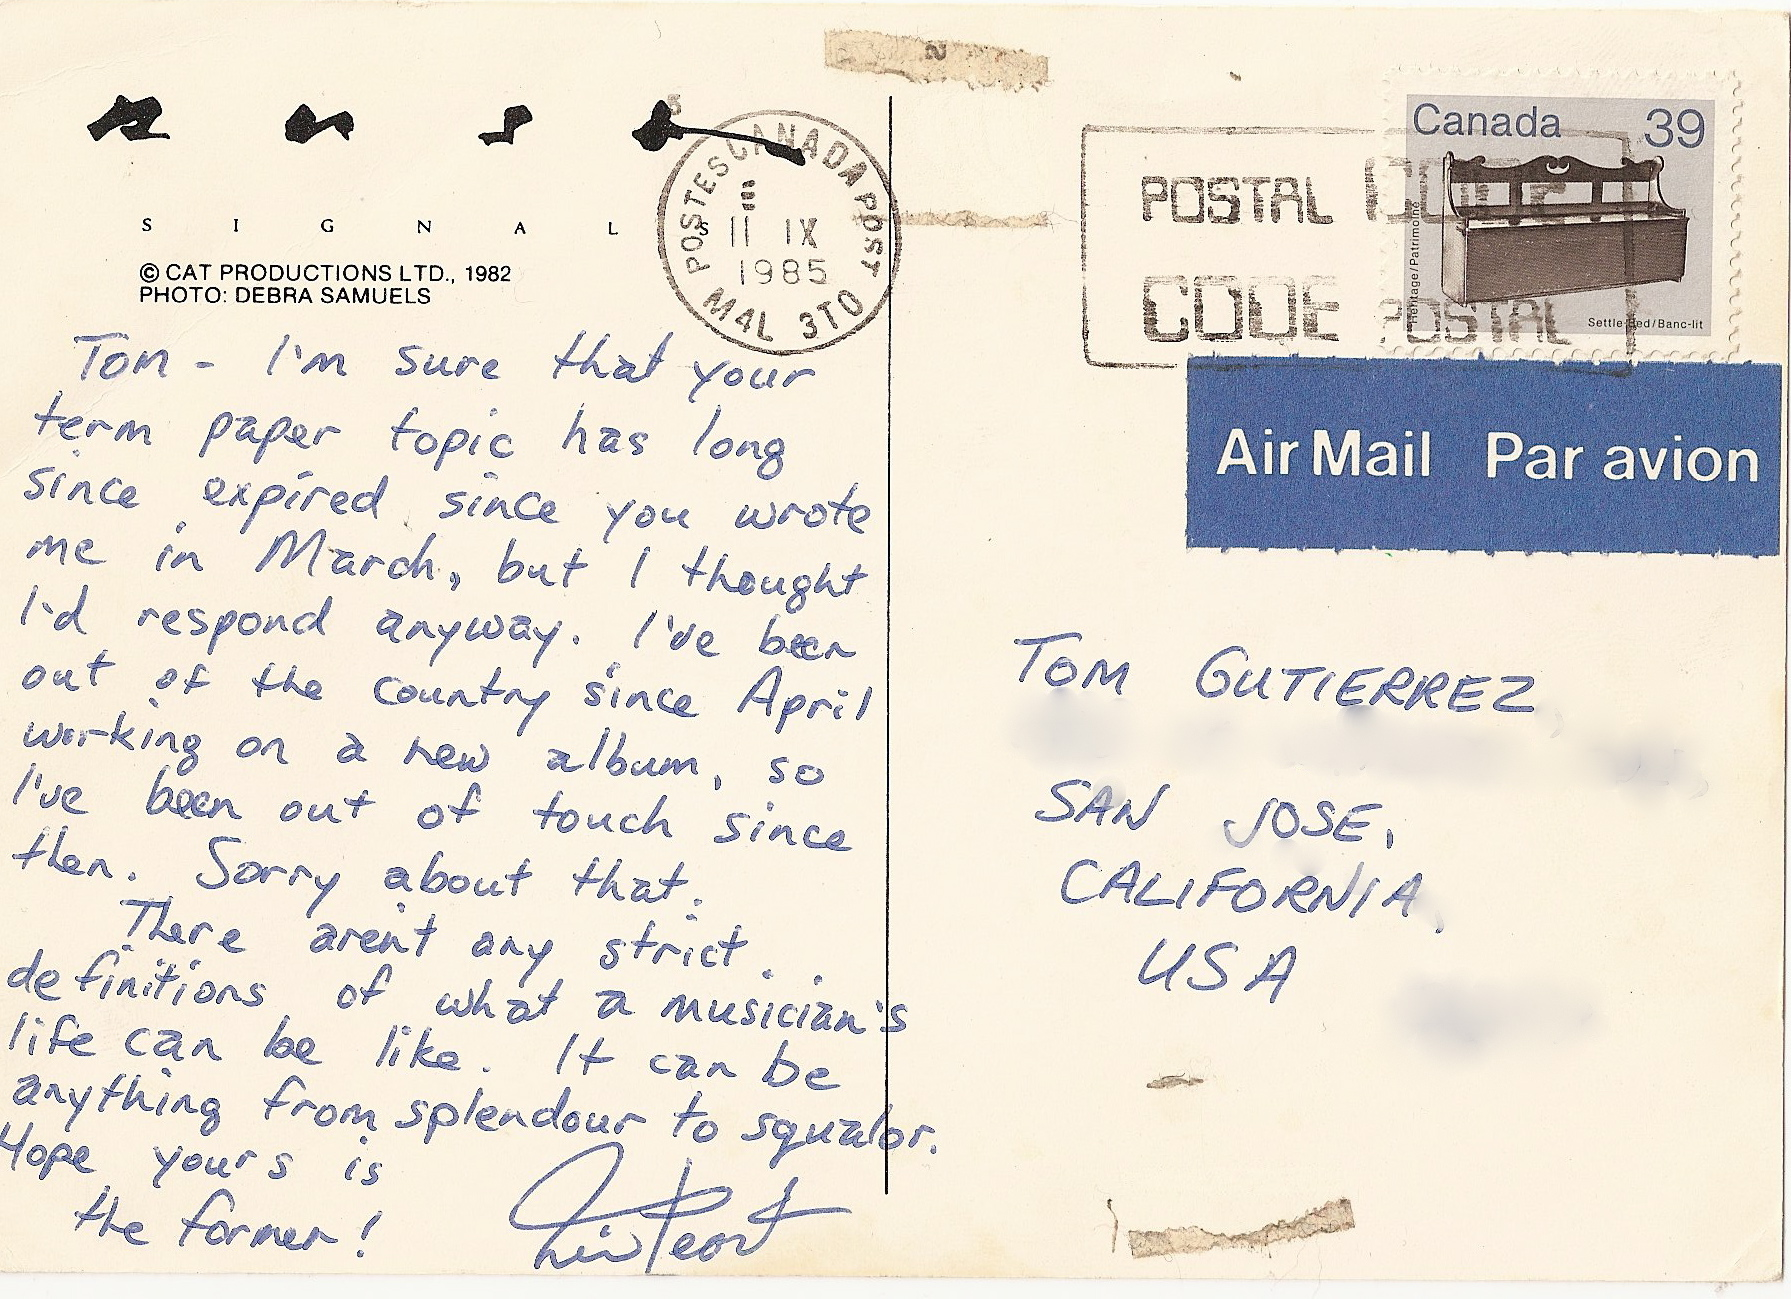 Postcard from Neil Peart back